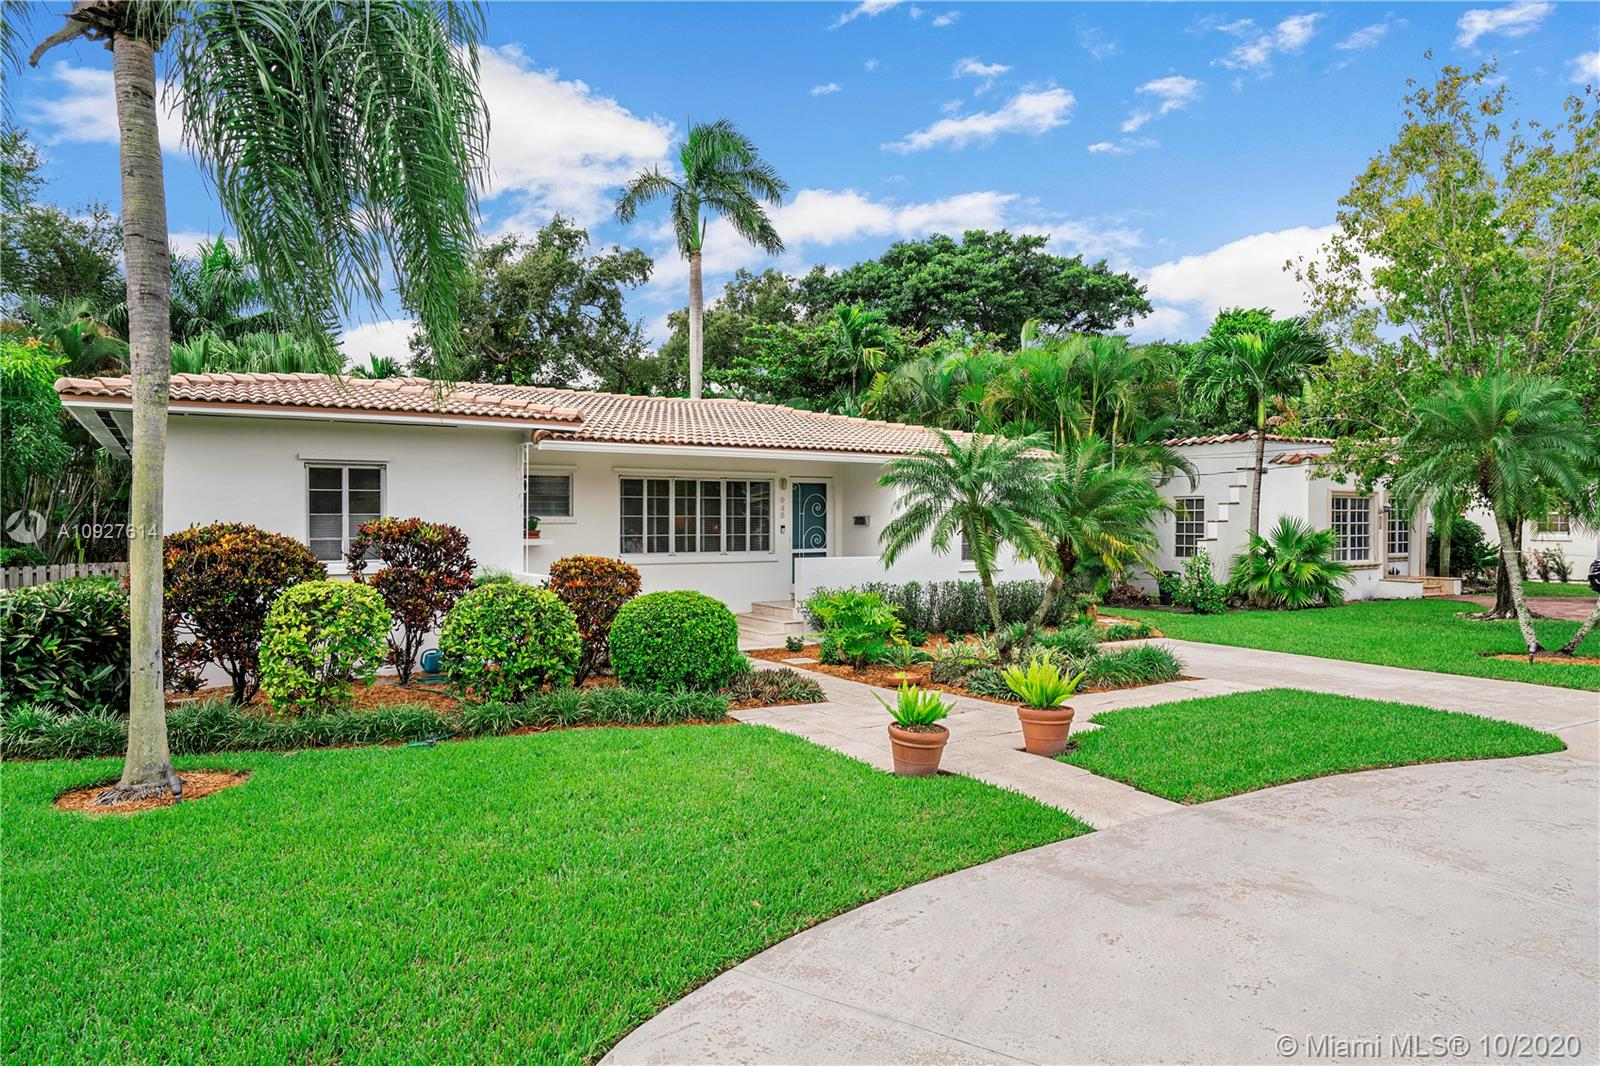 Details for 948 92nd St, Miami Shores, FL 33138